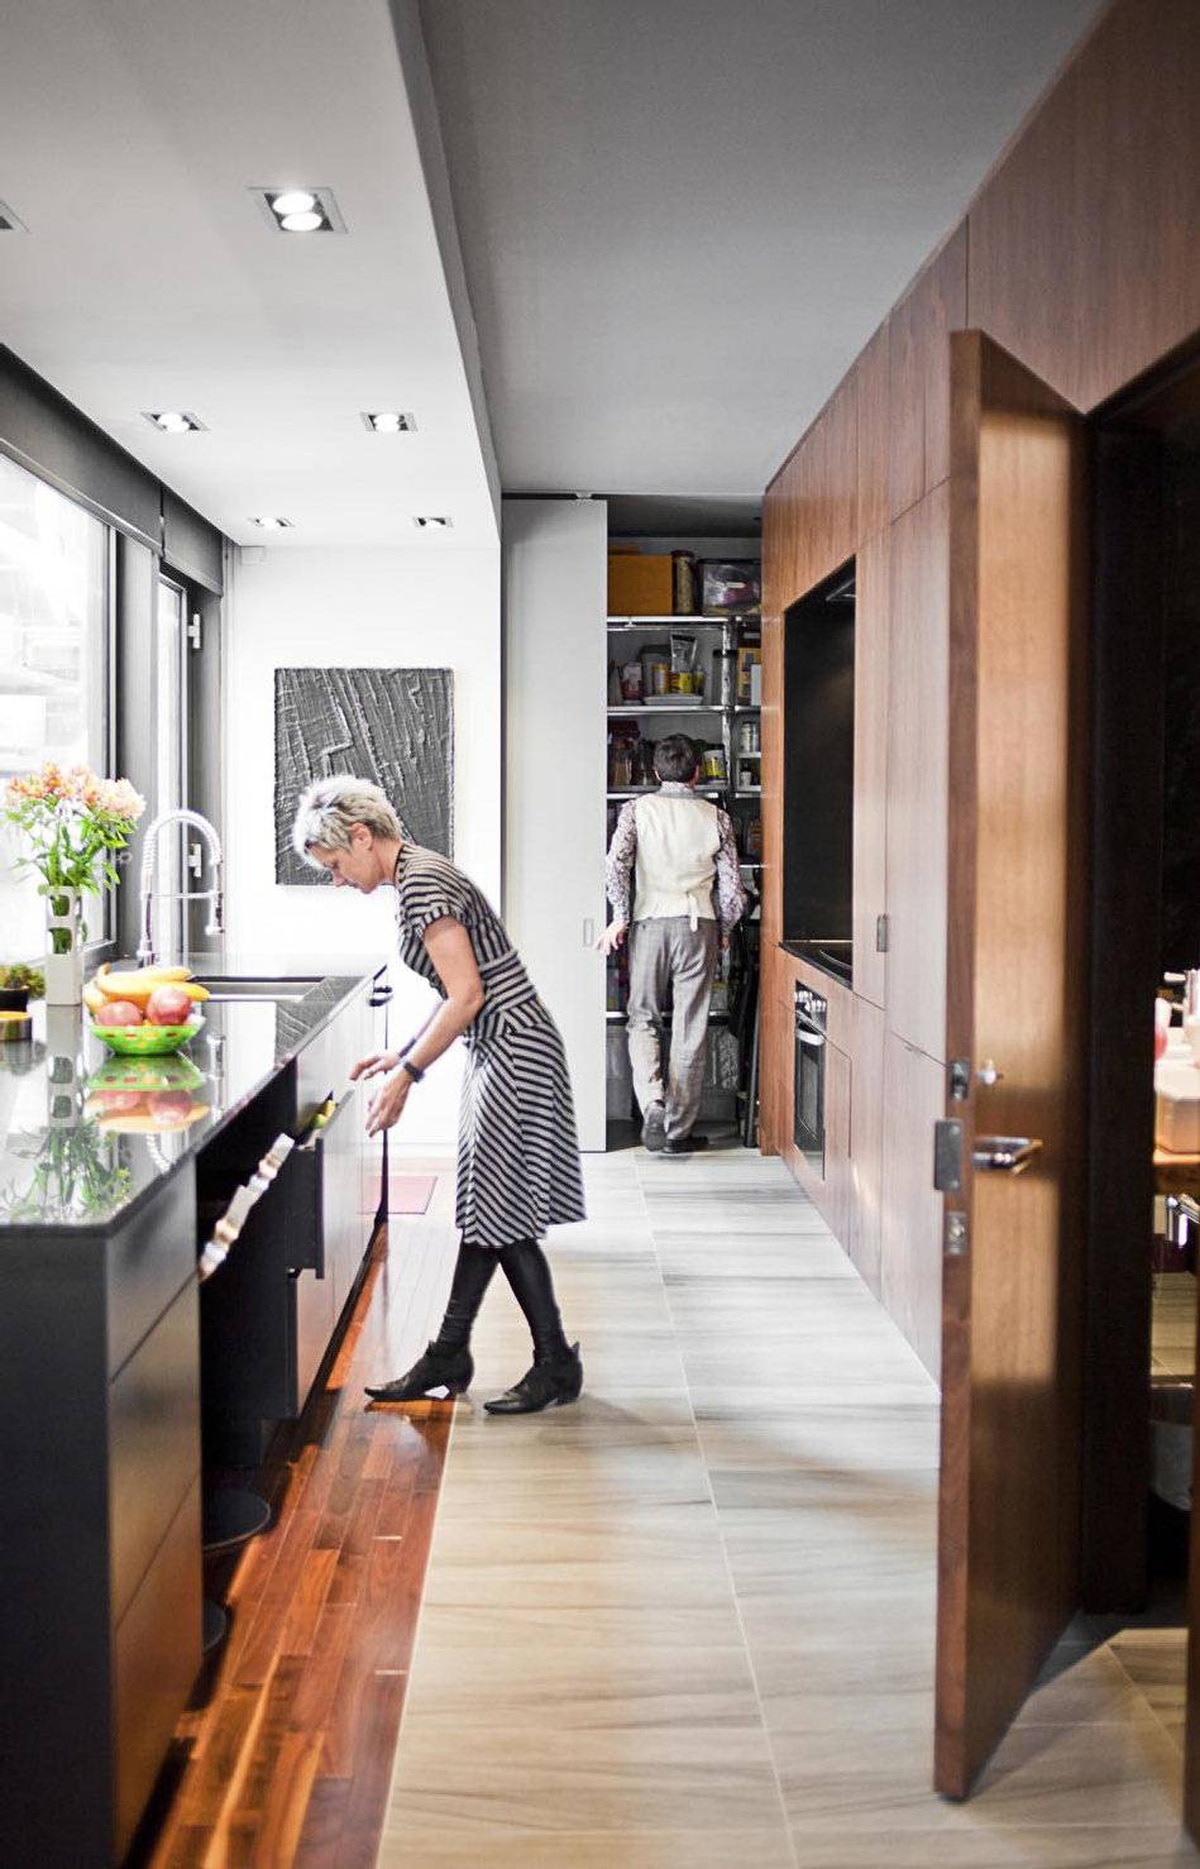 A walk-in pantry is tucked behind floor-to-ceiling sliding doors. They left room under the stairs for an off-the-kitchen bathroom.